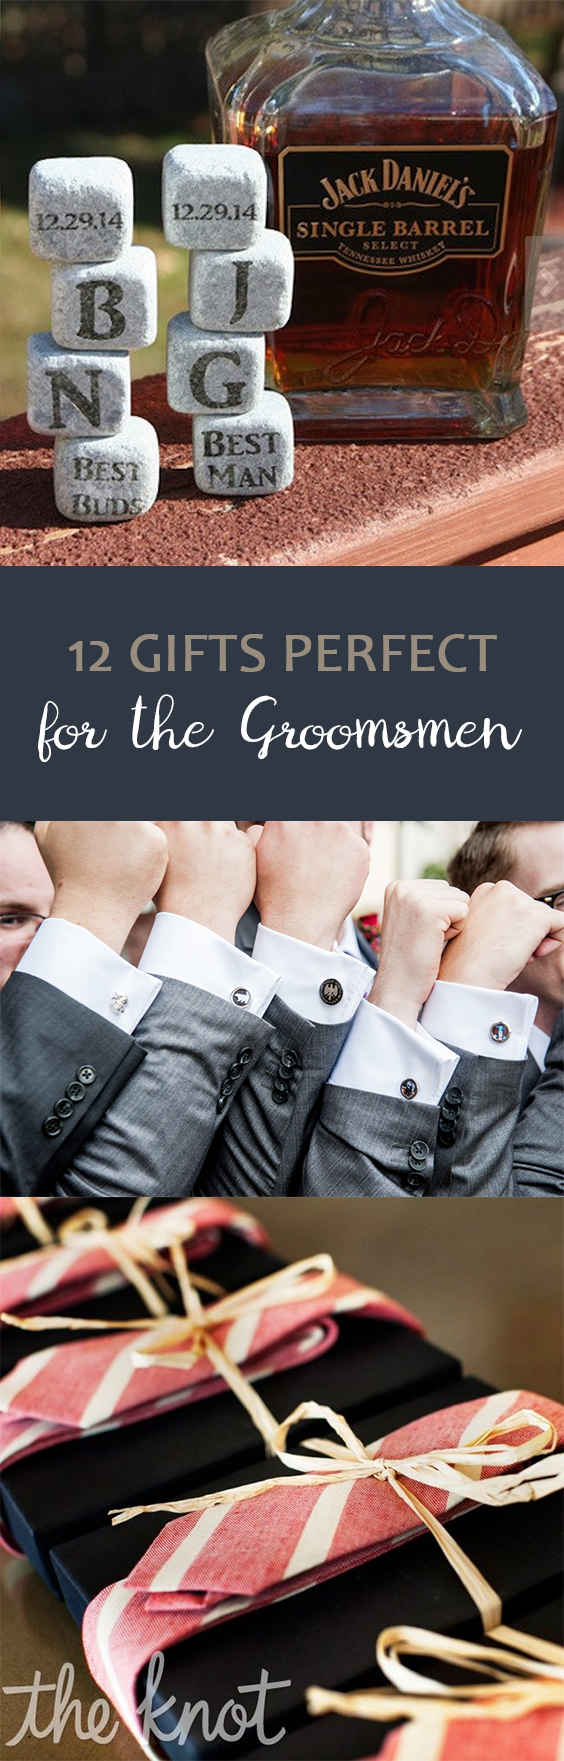 Gifts for Groomsmen, GIft Ideas for Him, Cool Gifts for Groomsmen, Groomsmen Gift Ideas, Wedding Gifts, Wedding gift Ideas, Wedding Gift Hacks, Popular #groomsman #gifts #wedding #diywedding #dreamwedding #weddingreception